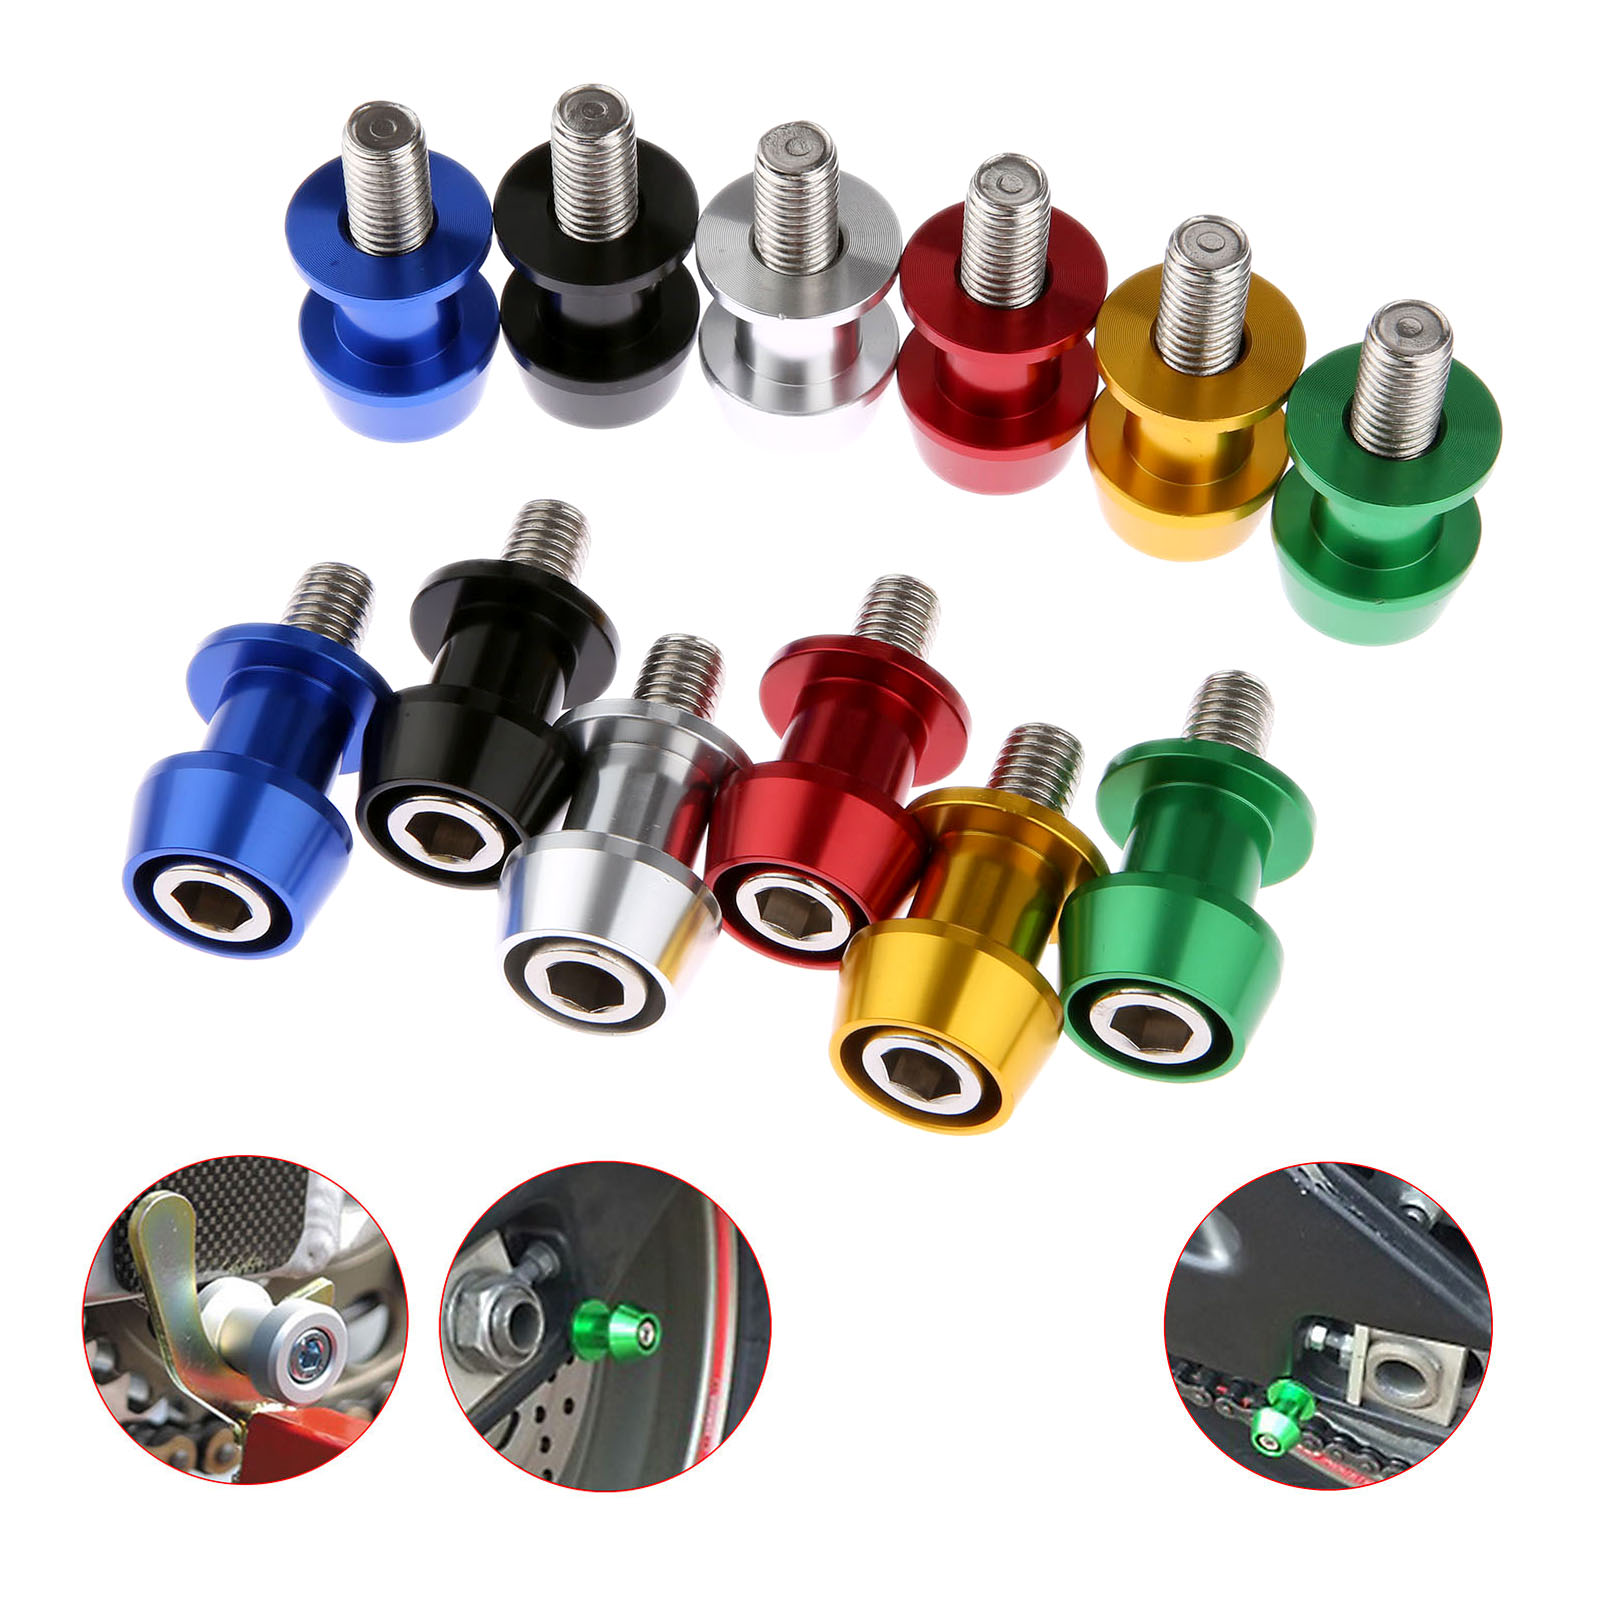 2Pc 8mm 10mm Motorcycle CNC Swingarm Swing Arm Spools Sliders Bobbins For Kawasaki Z800 Honda Suzuki Ducati Z8W ZX6R BMW S1000RR 2pcs universal motorcycle stand screws cnc swingarm swing sliders spools m6 m8 m10 for yamaha r3 honda crf 450 suzuki gn250